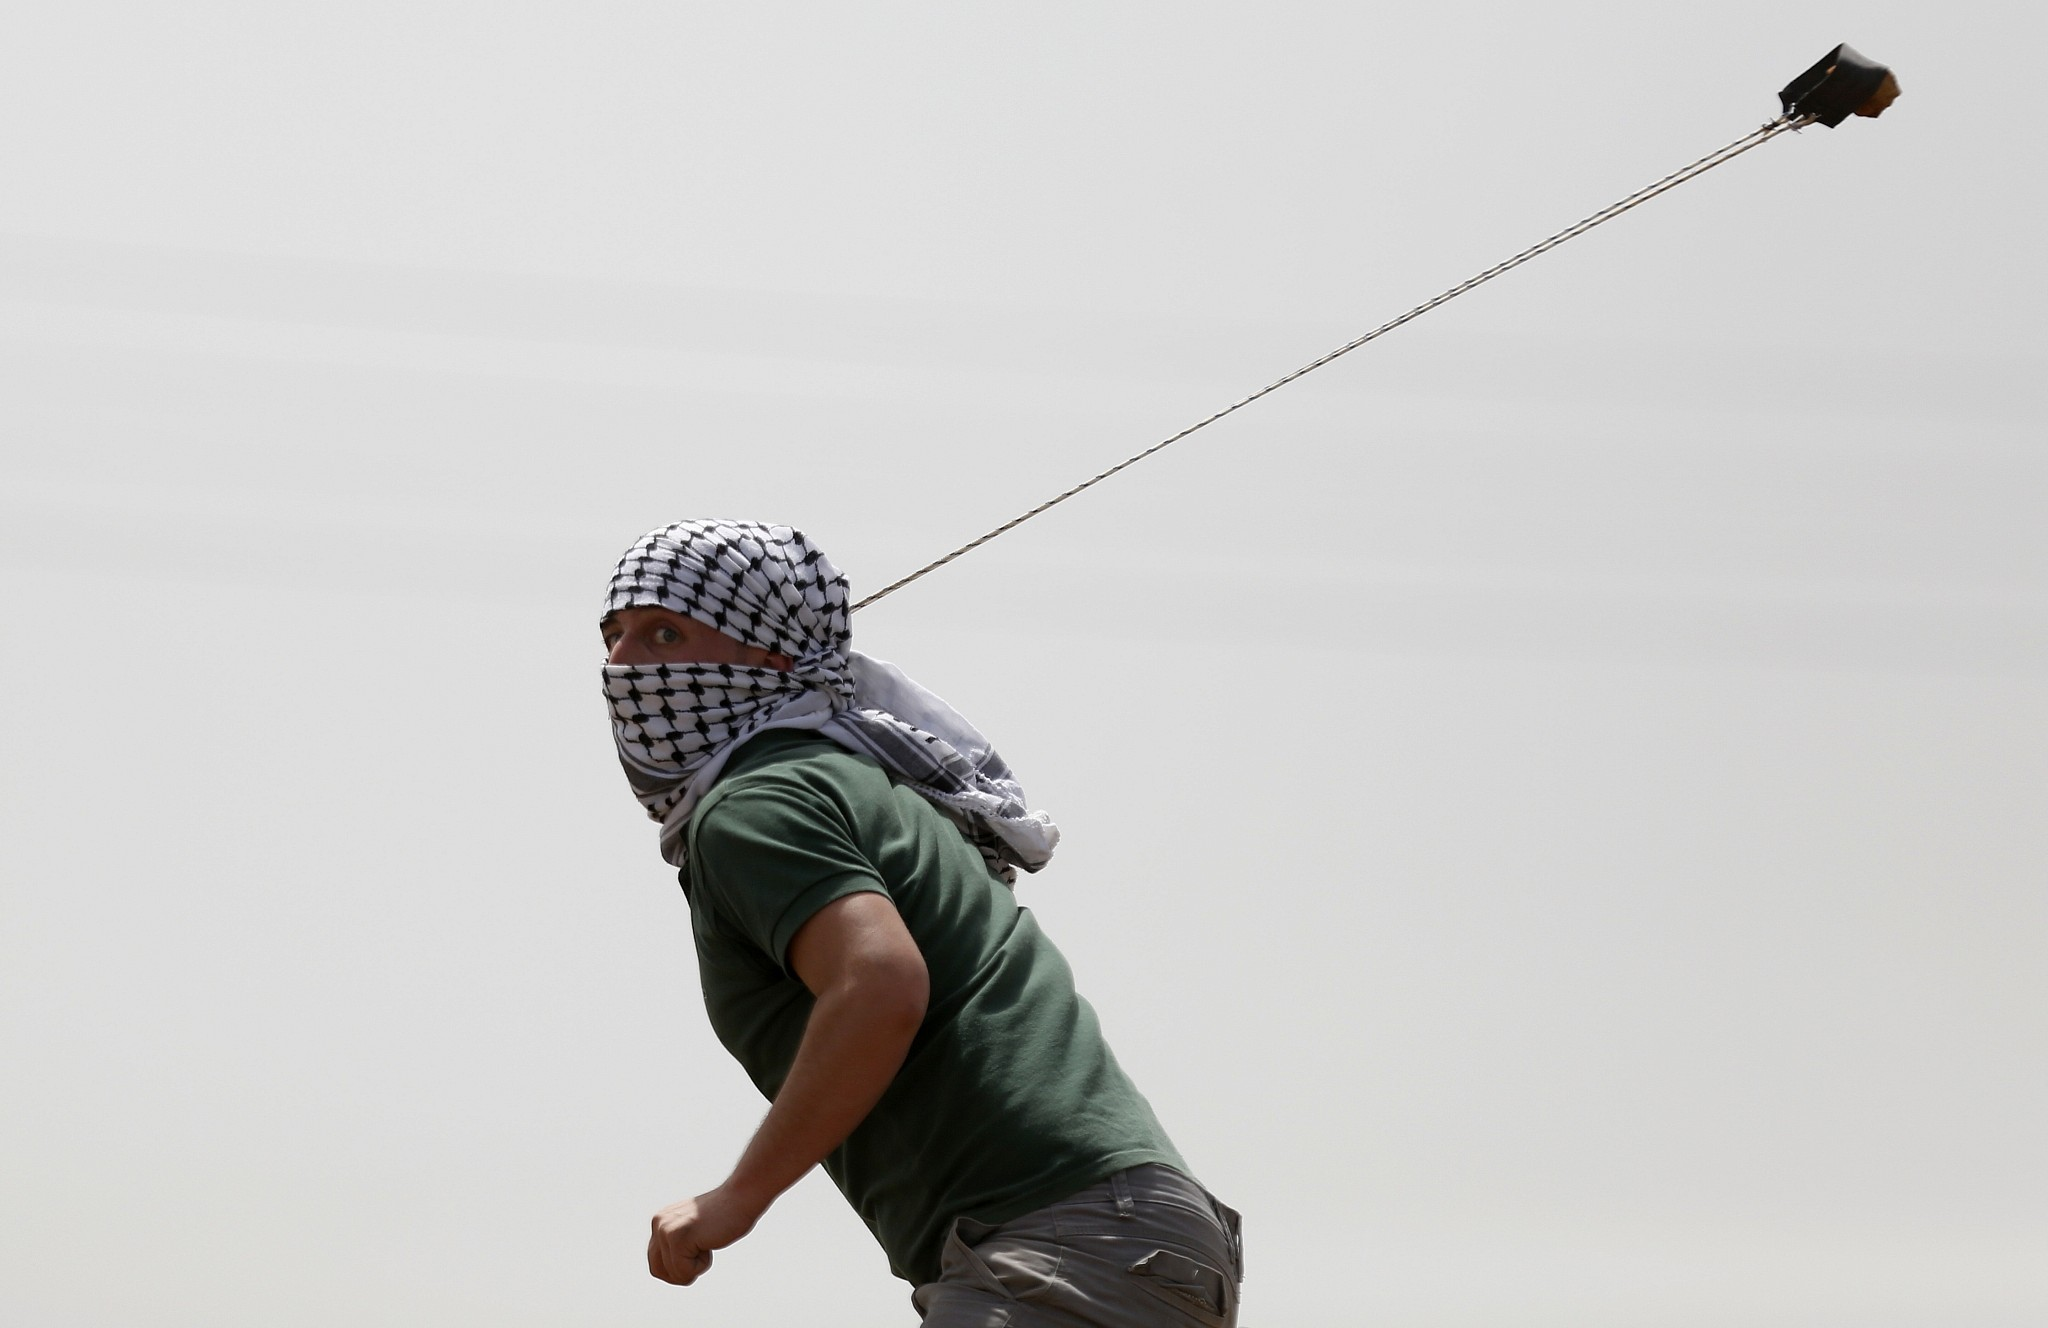 palestinian rock thrower shot dead by soldiers in west bank idf